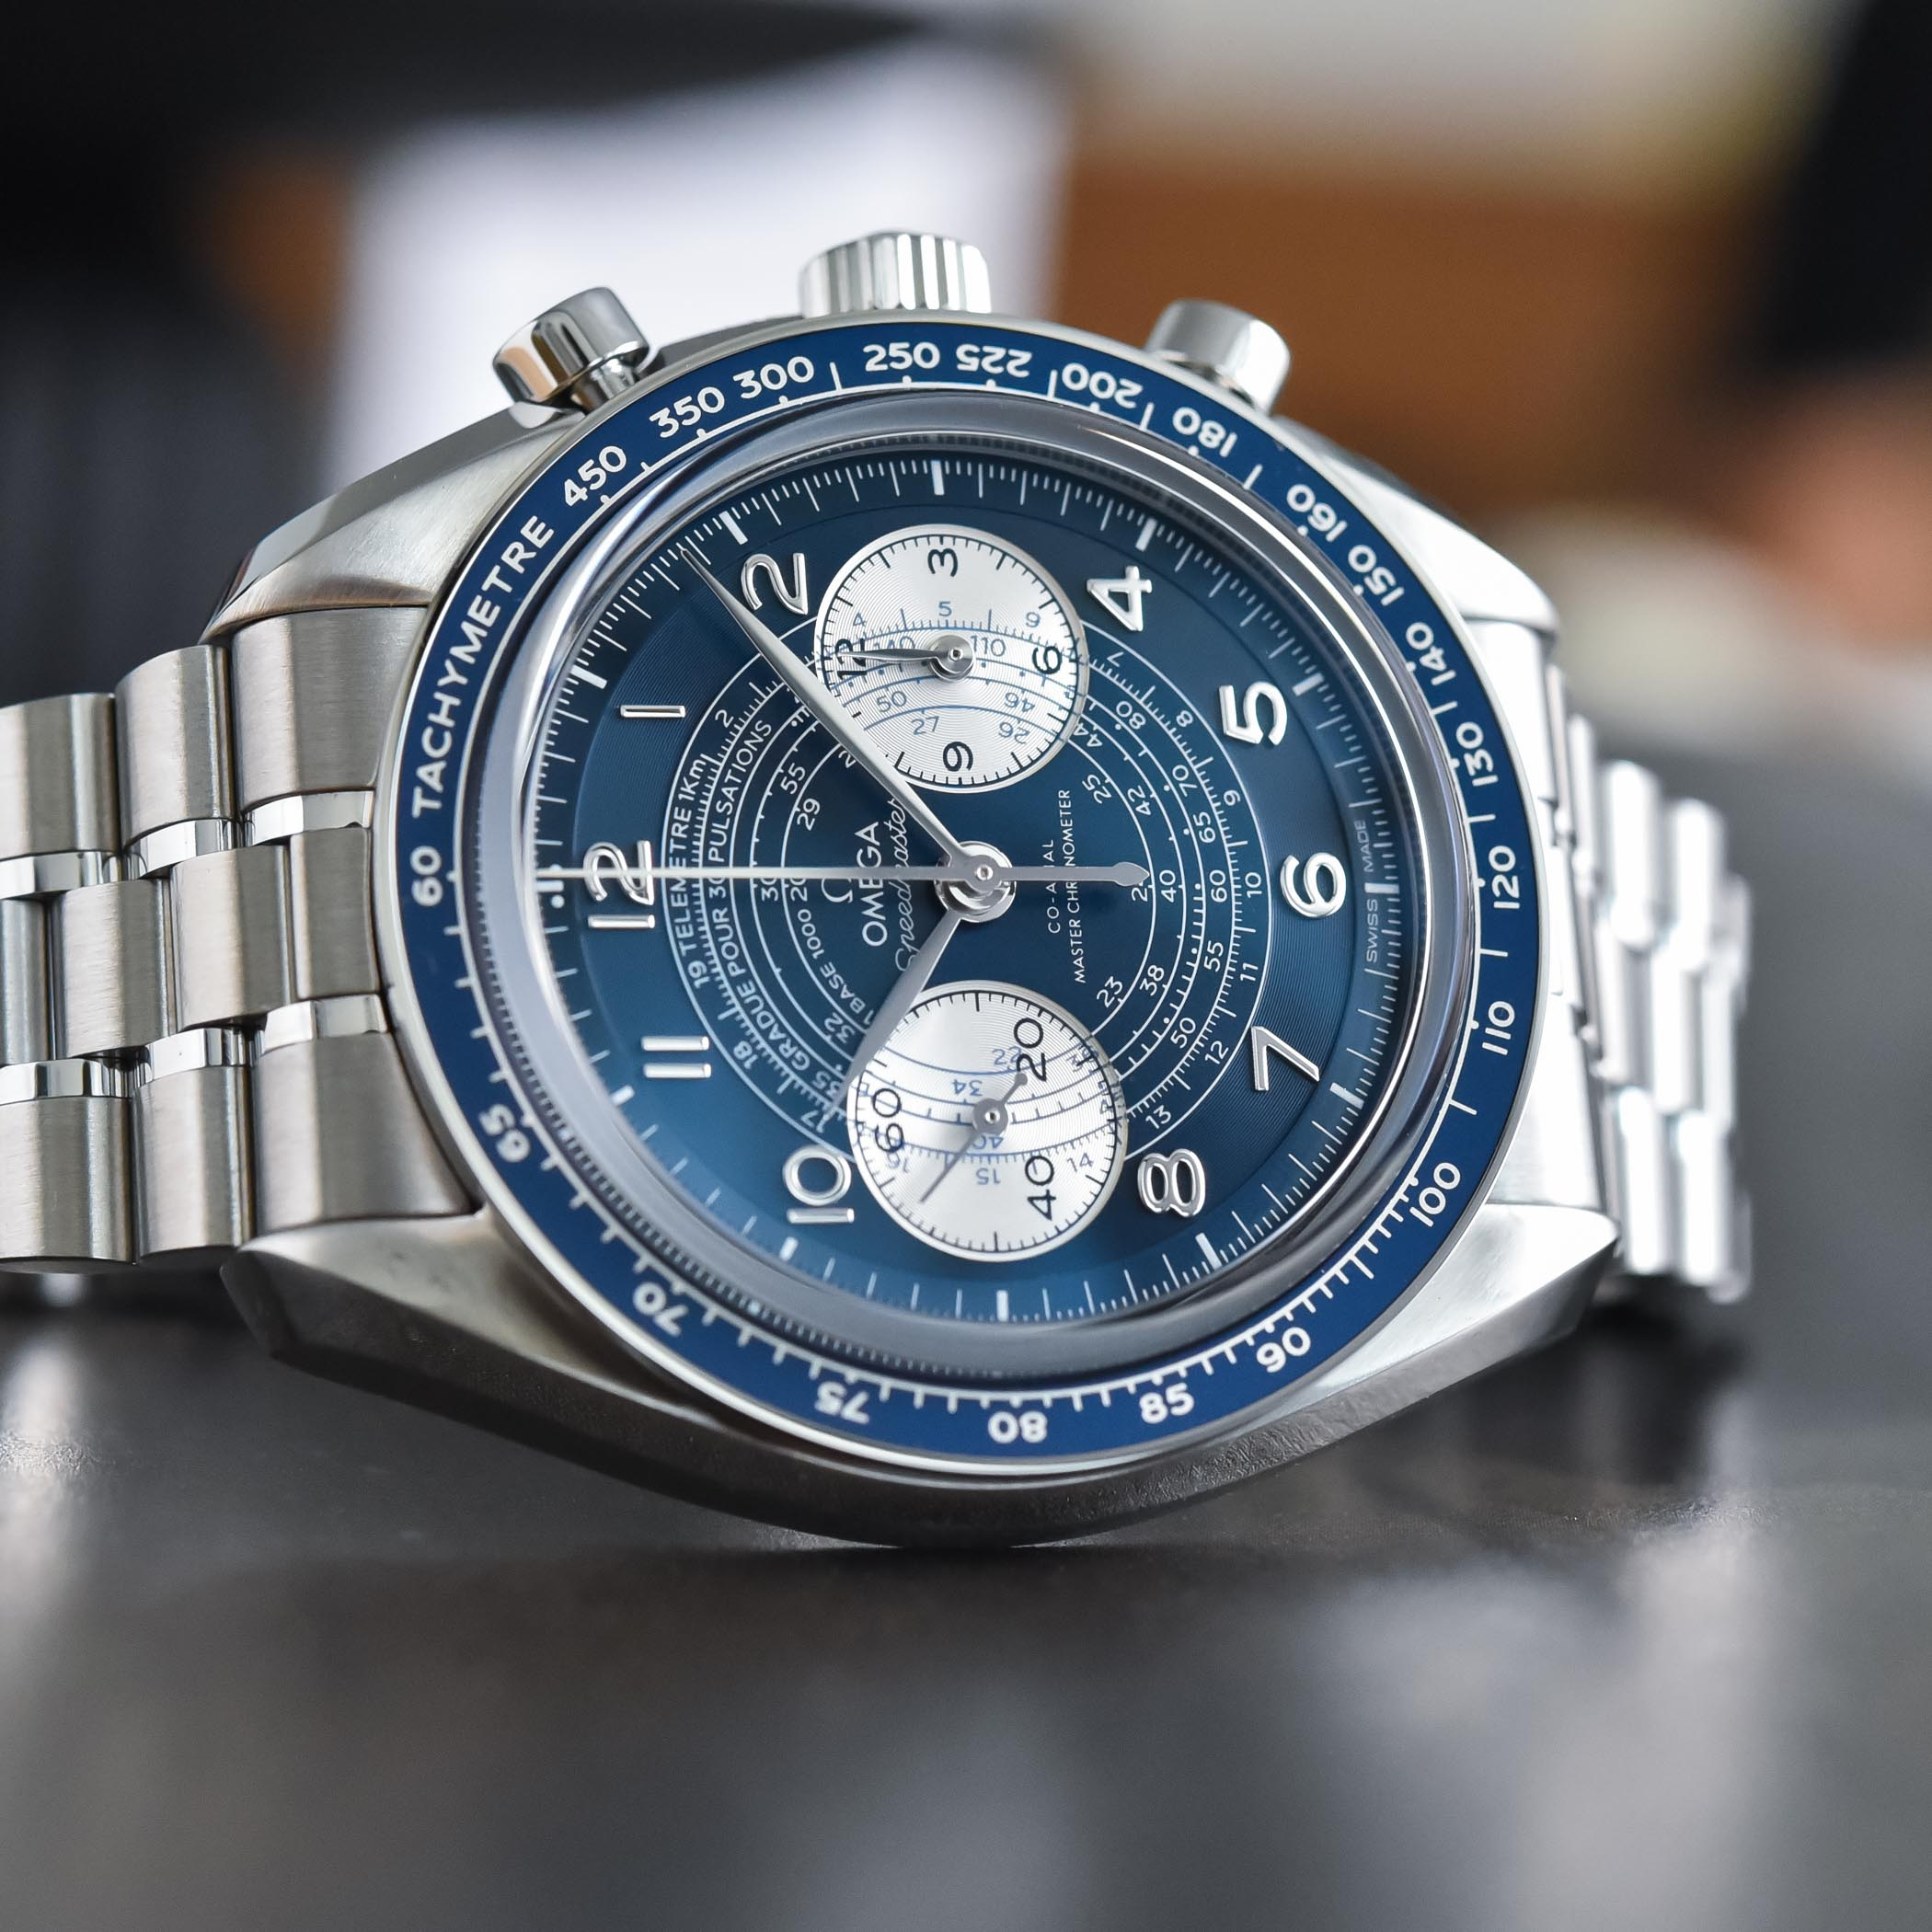 2021 Omega Speedmaster Chronoscope Collection review 329.30.43.51.03.001 9